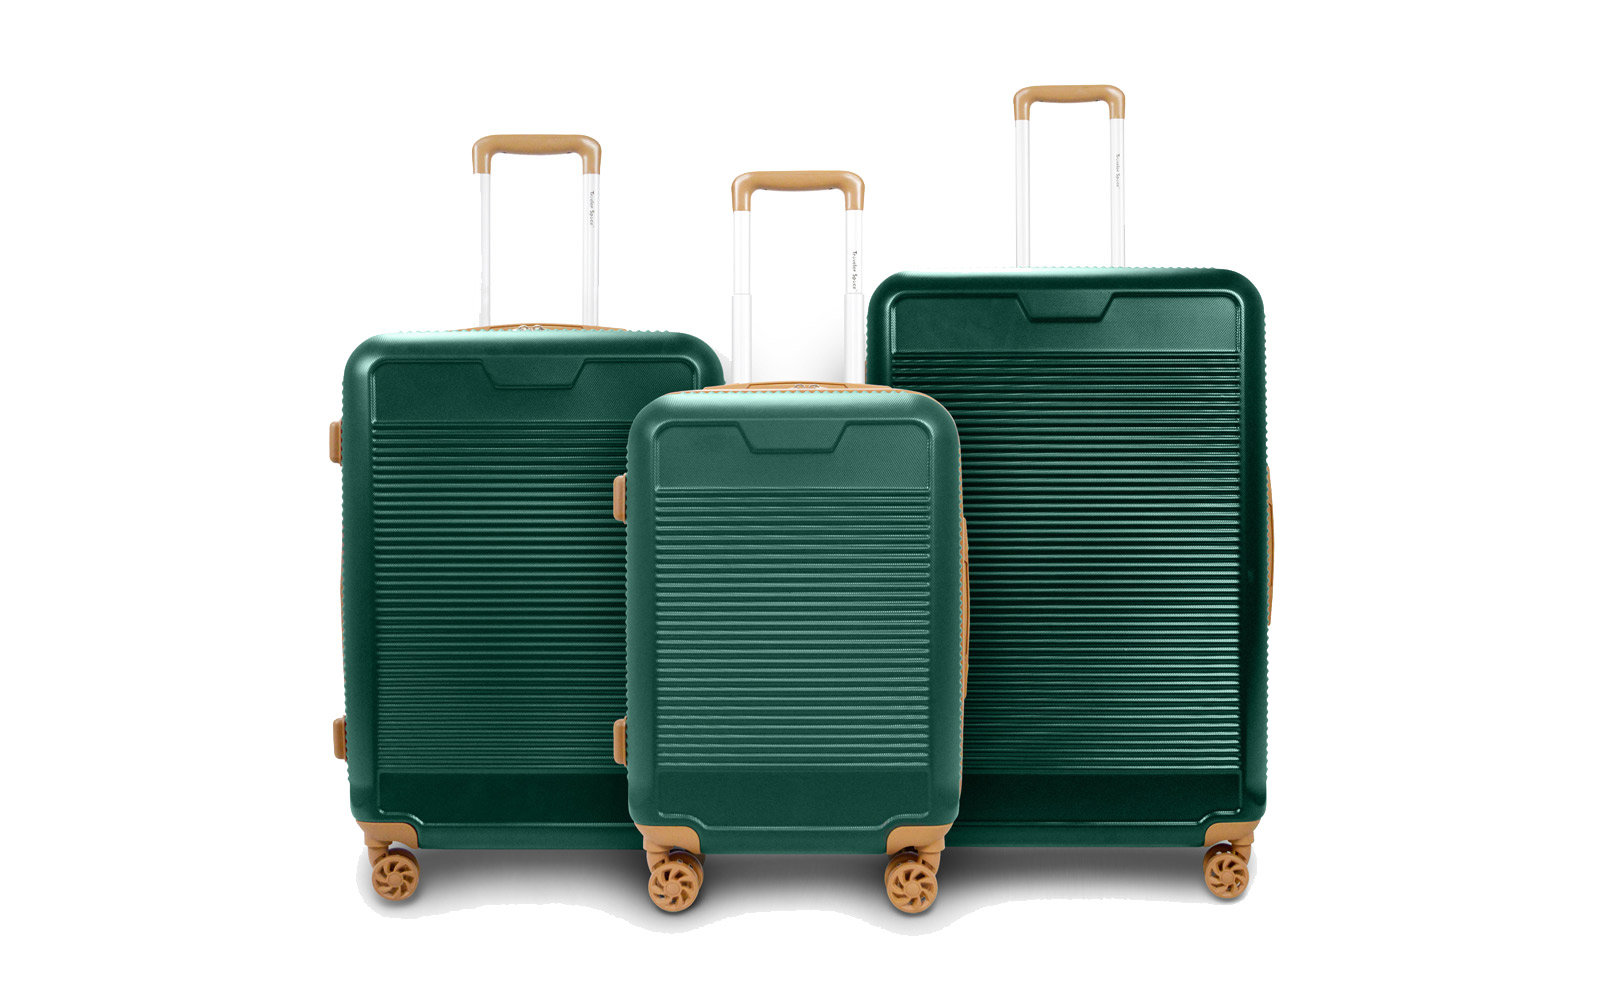 traveler space black friday luggage deals 2018